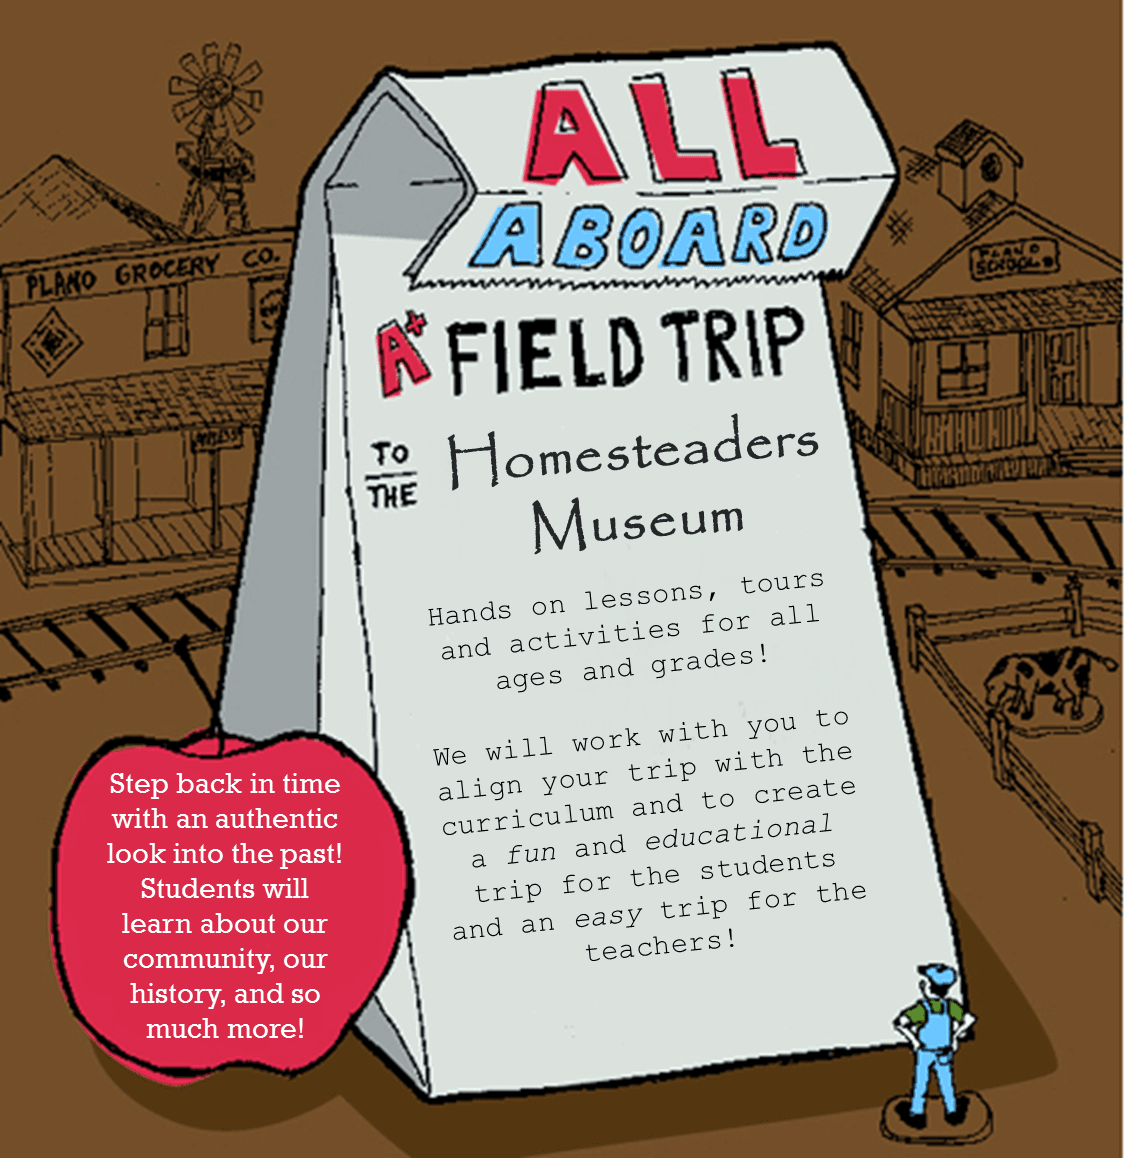 All Aboard - Field Trip to the Homesteaders Museum